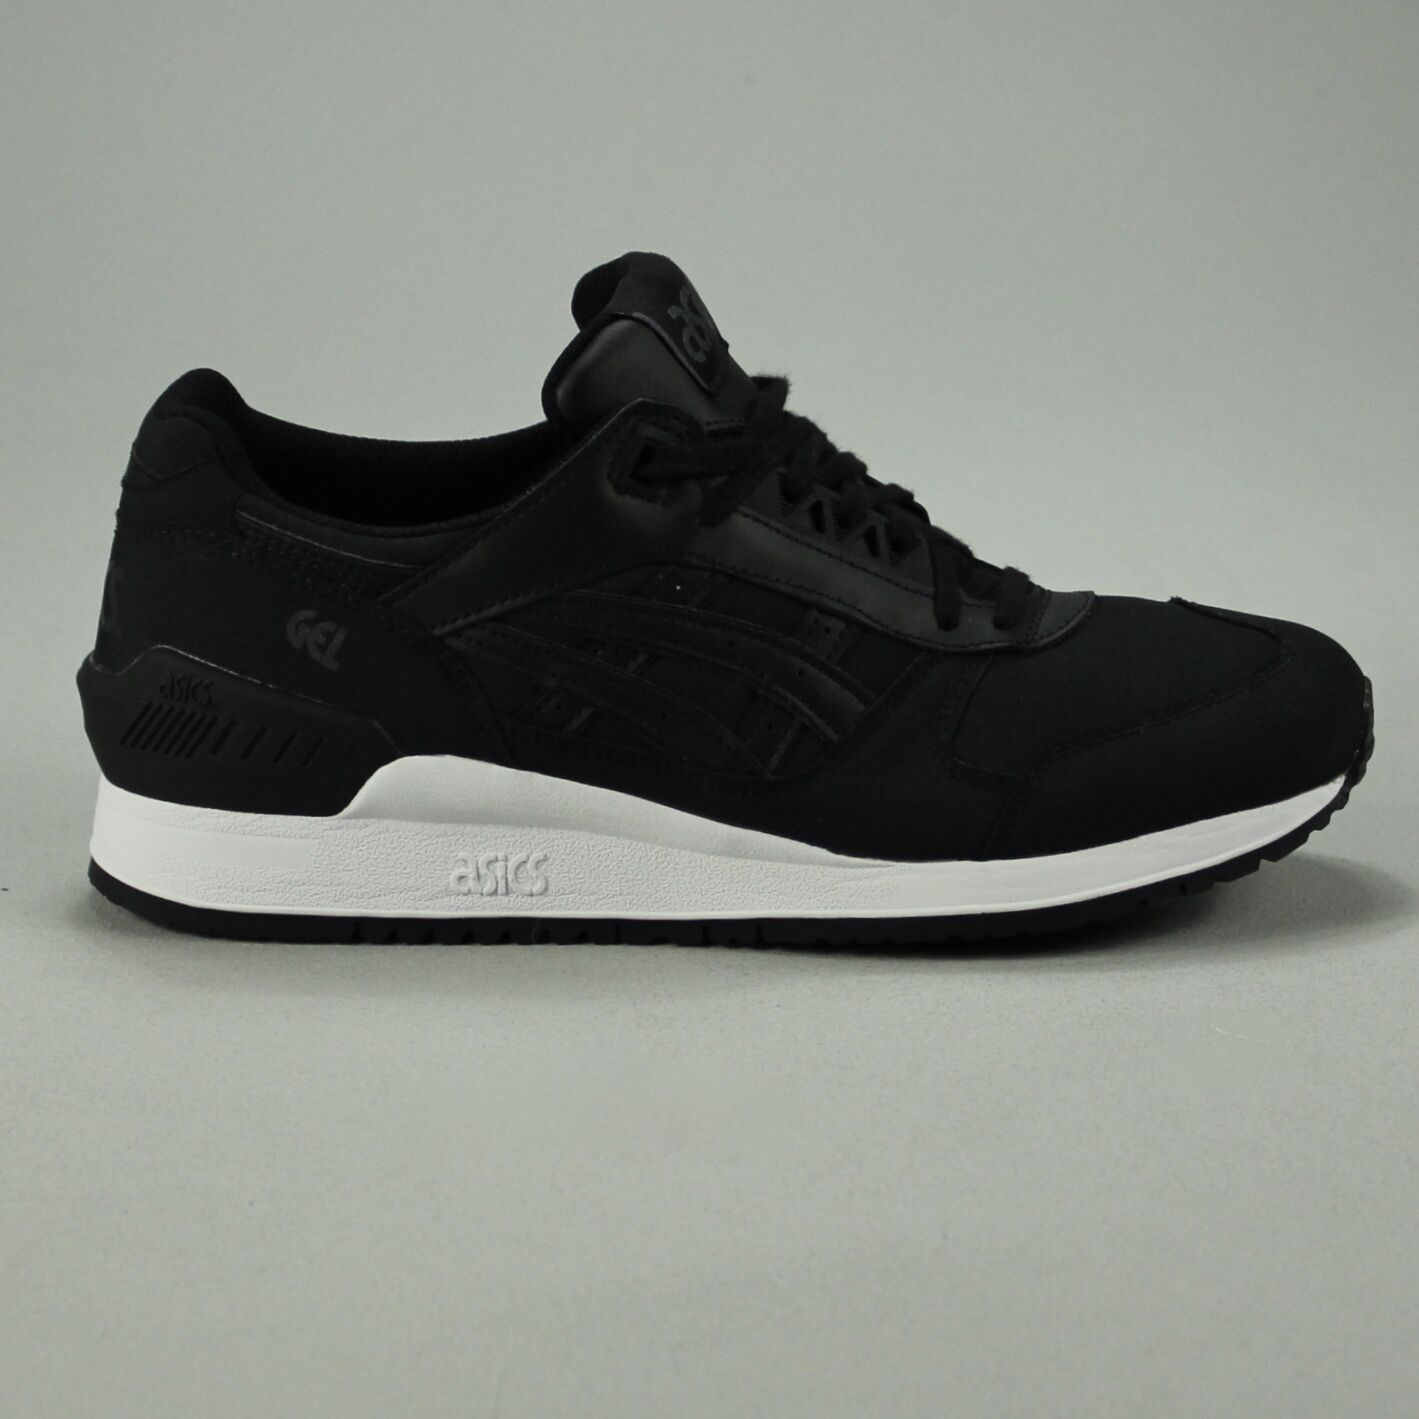 Asics Respector in Shoes Trainers Black new in Respector box UK Size 7,8,10,11 1b78aa